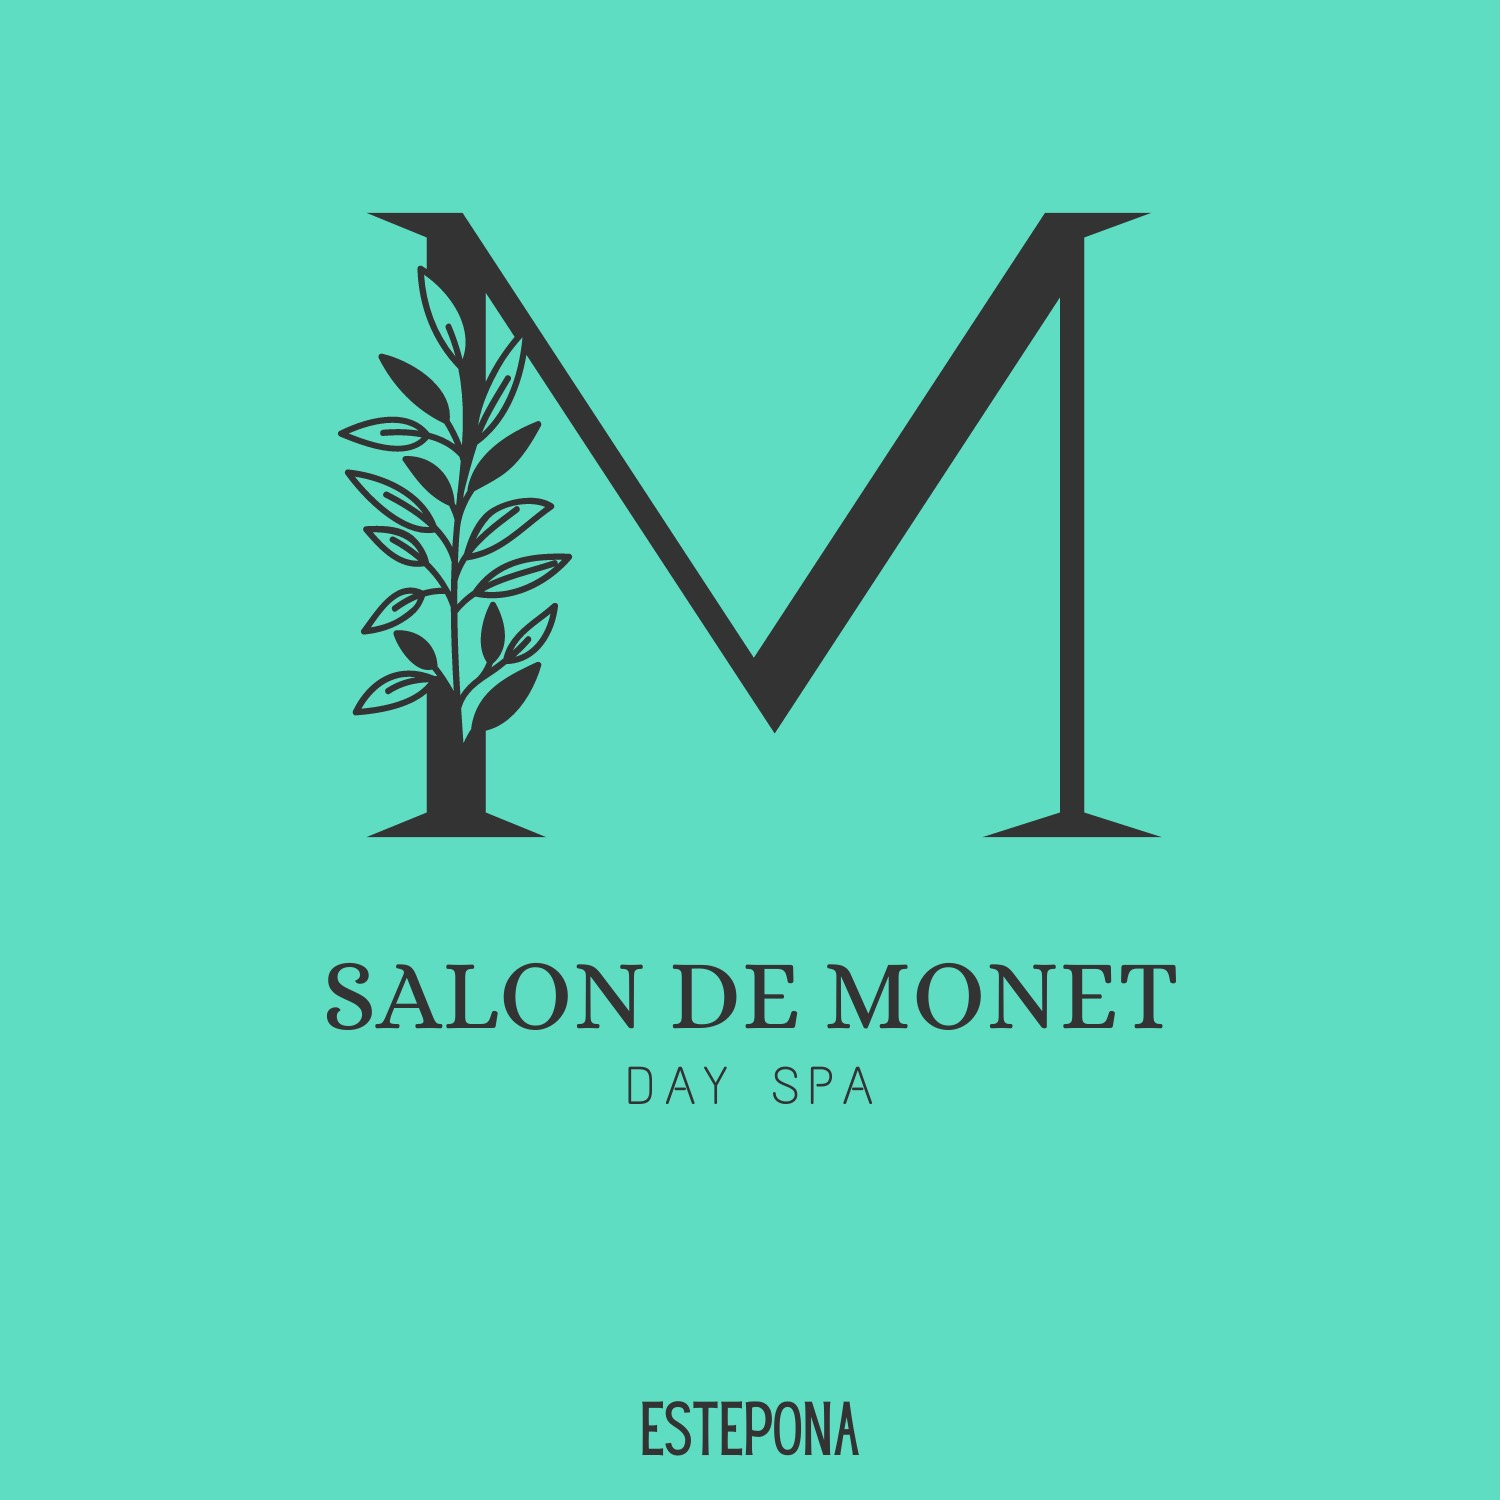 Salon De Monet